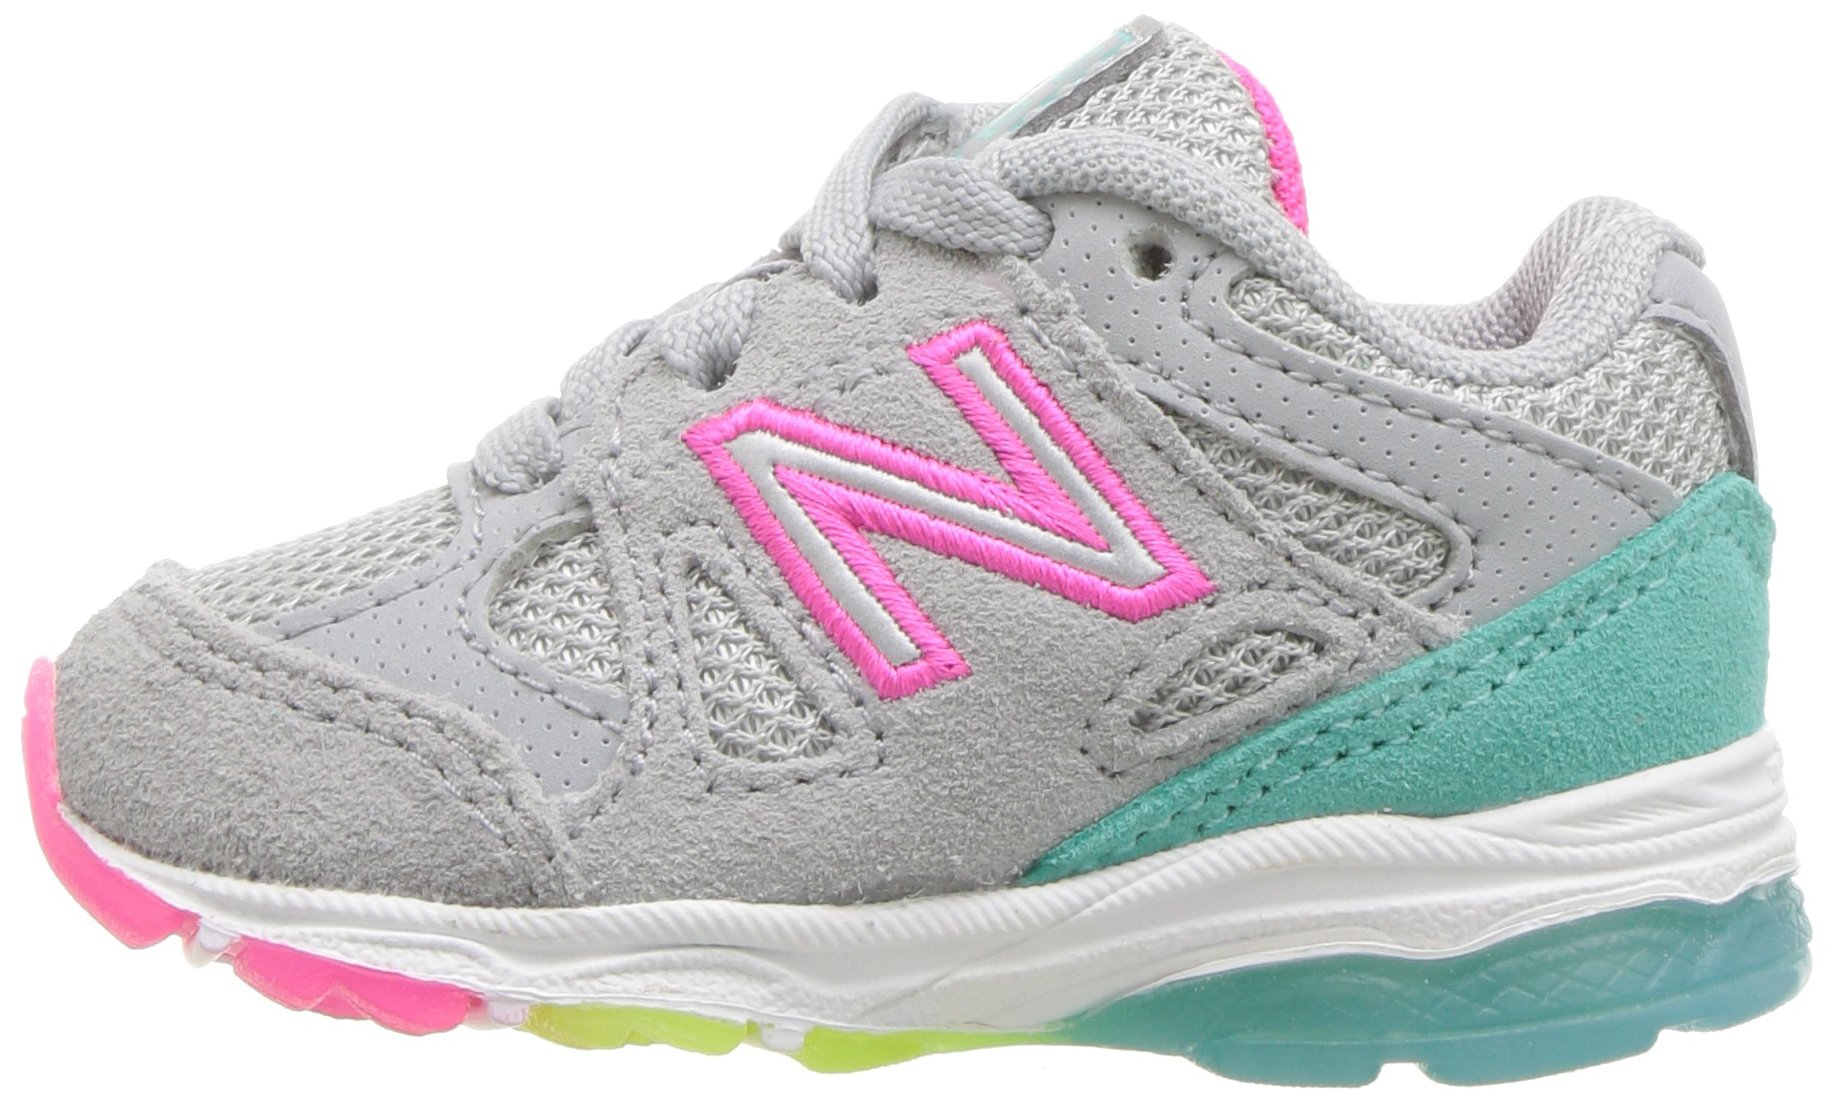 New Balance Girls' 888v1 Running Shoe, Silver Mink/Rainbow, 6 W US Big Kid by New Balance (Image #5)